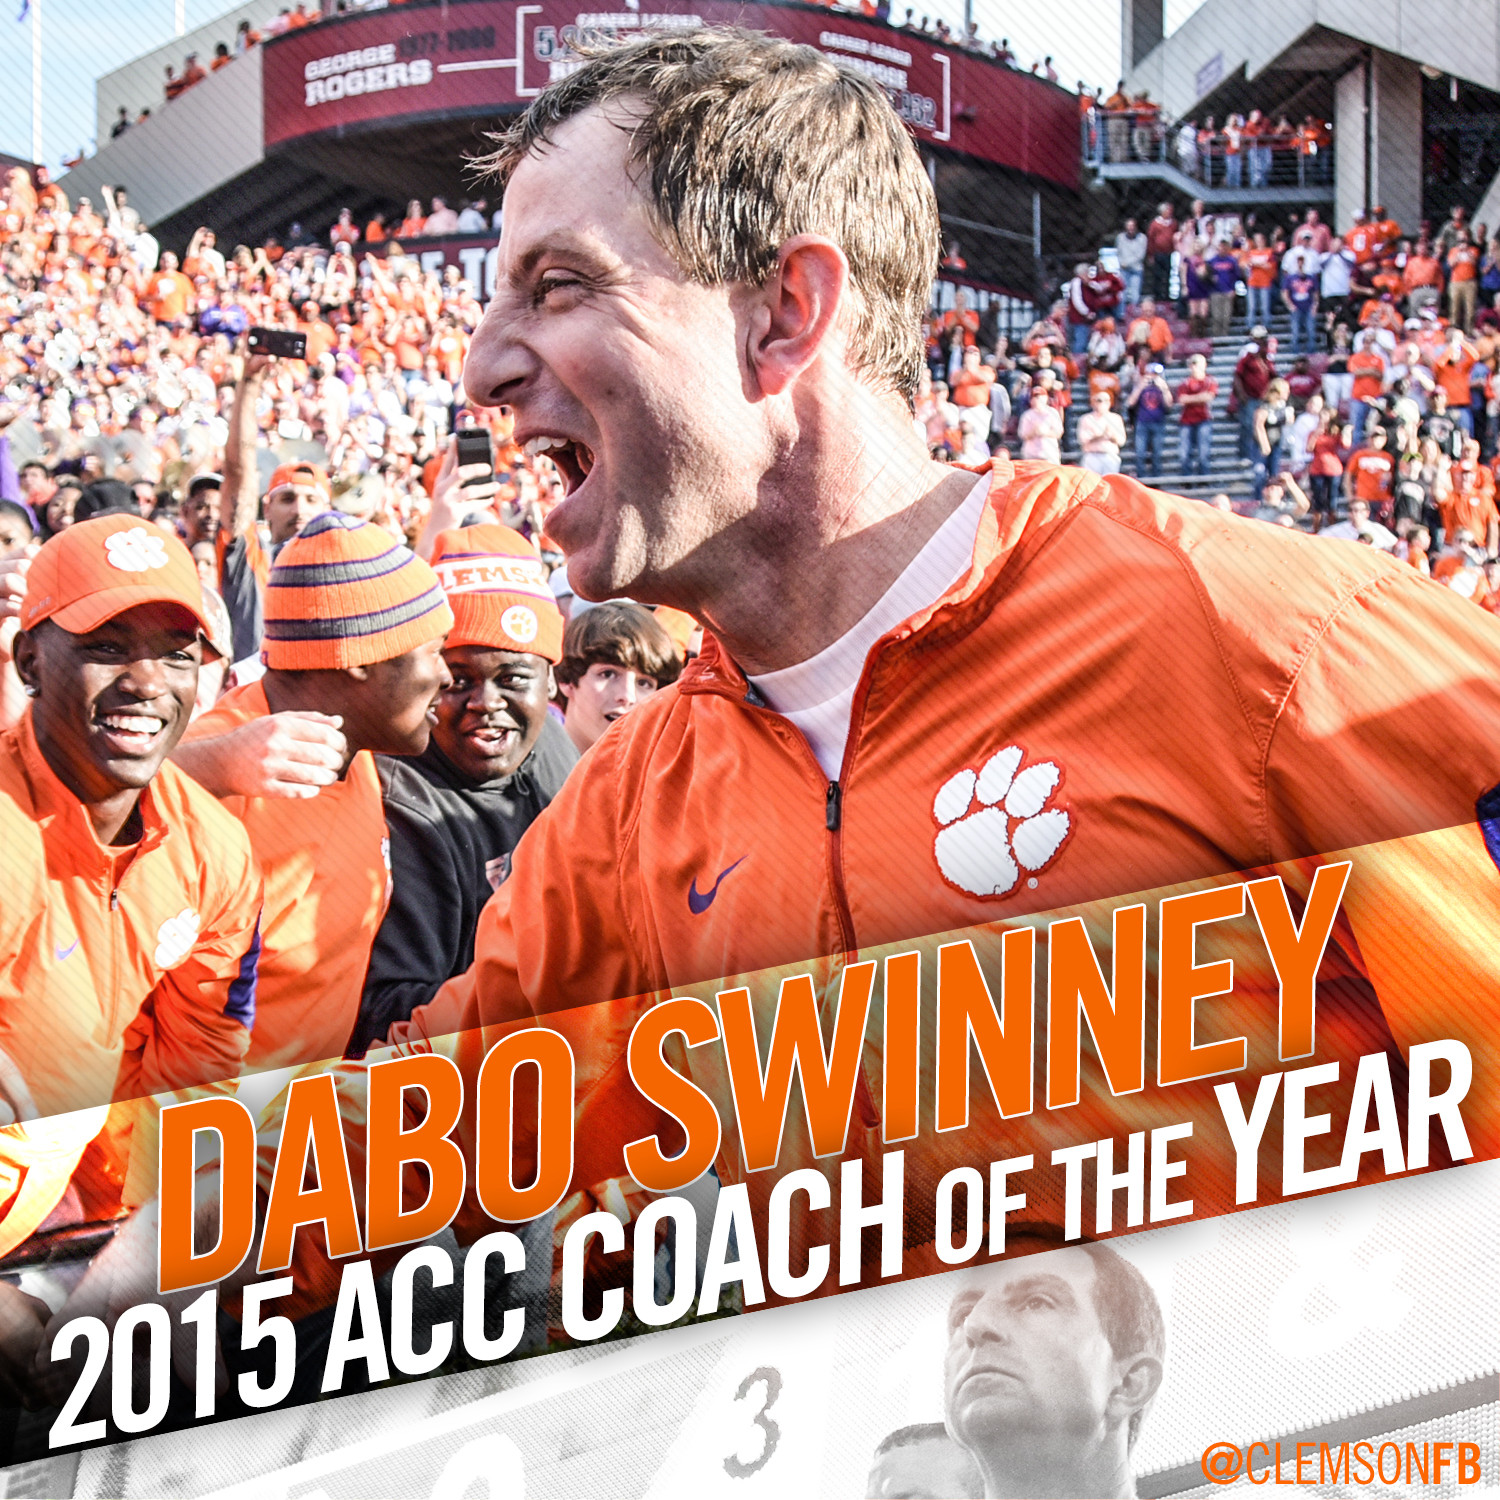 Dabo Swinney Named ACC Coach of the Year